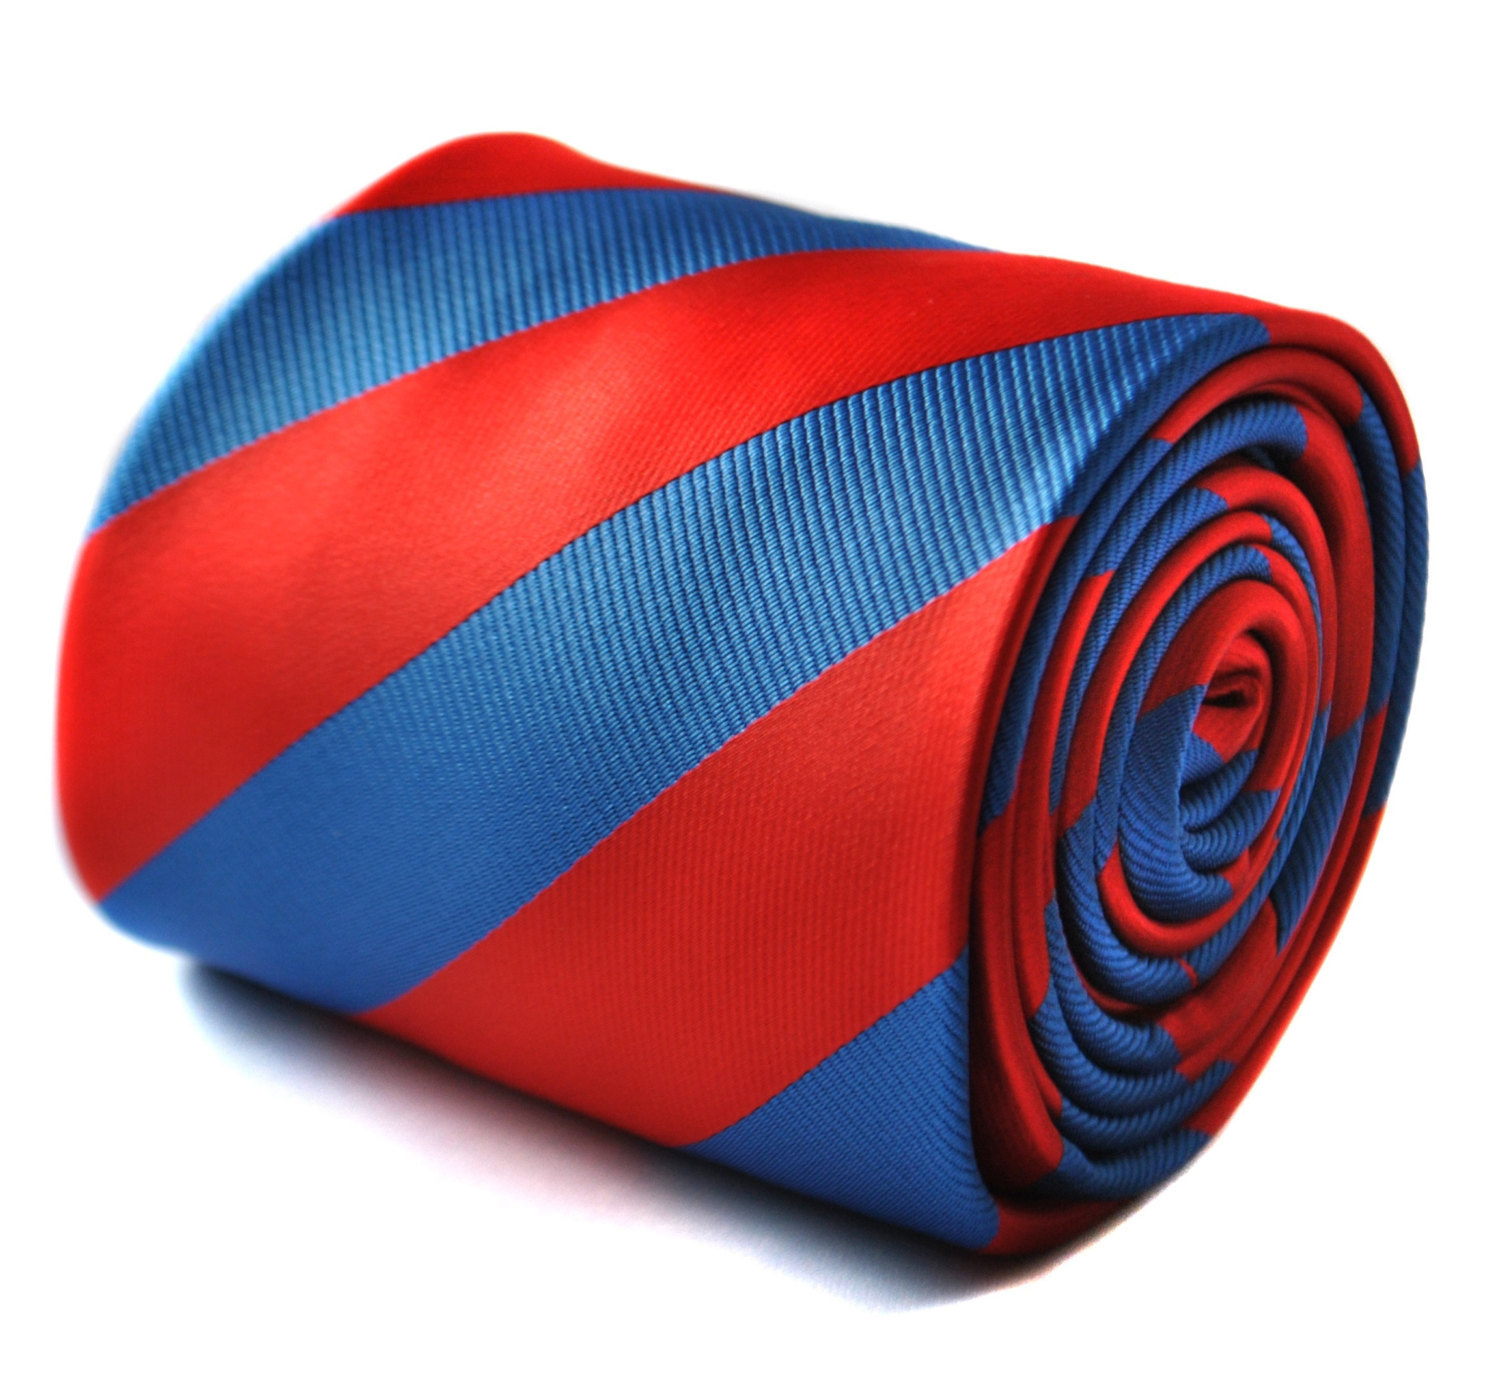 red and royal blue barber striped tie with signature floral design to the rear b